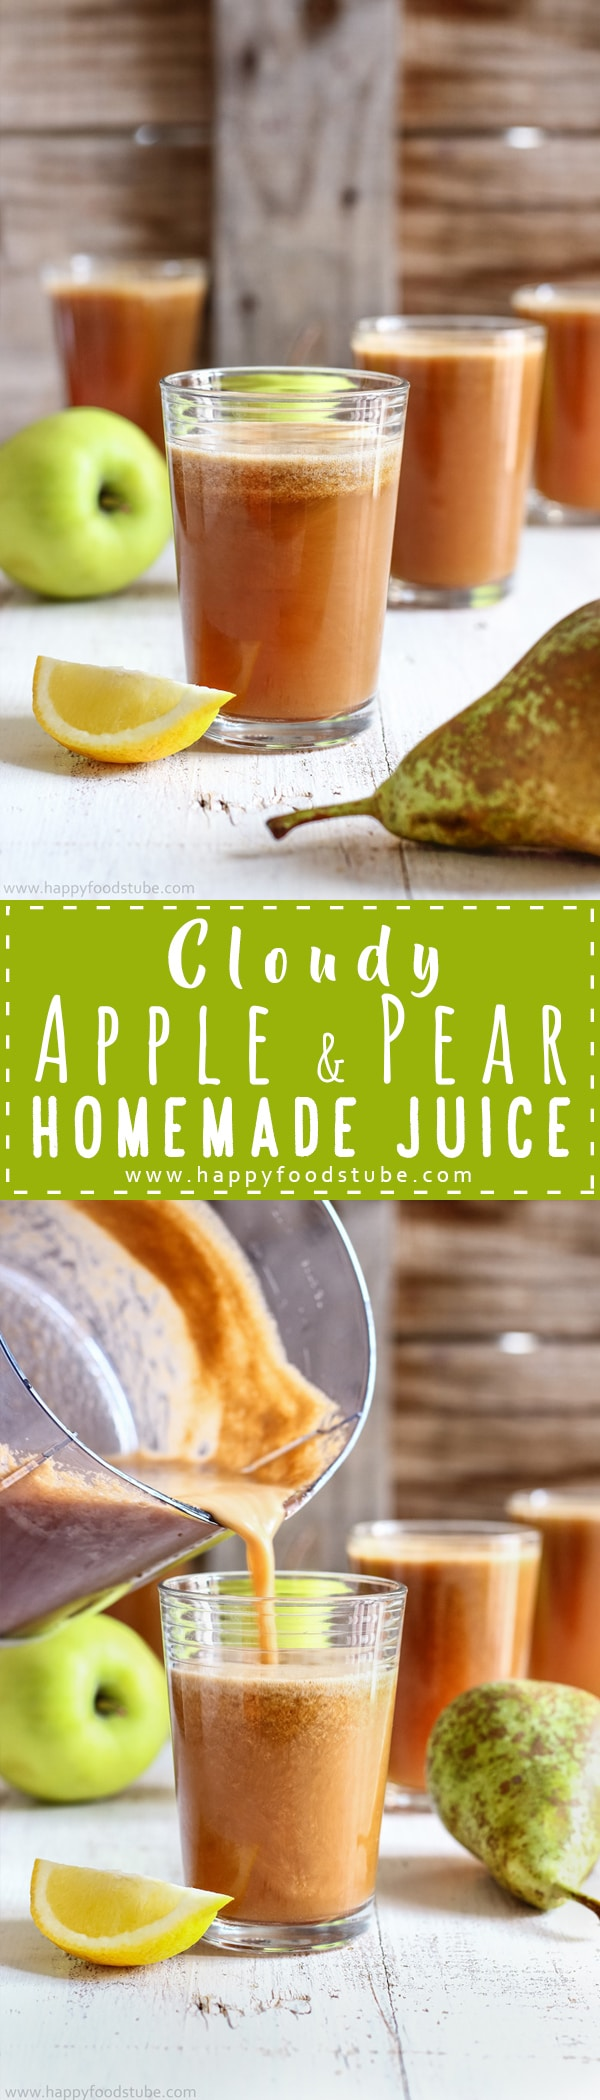 Healthy cloudy apple pear juice recipe. Nothing is better than a glass of homemade fresh juice. Easy juicing idea. Only 2-ingredients, ready in 5-minutes and tastes amazing